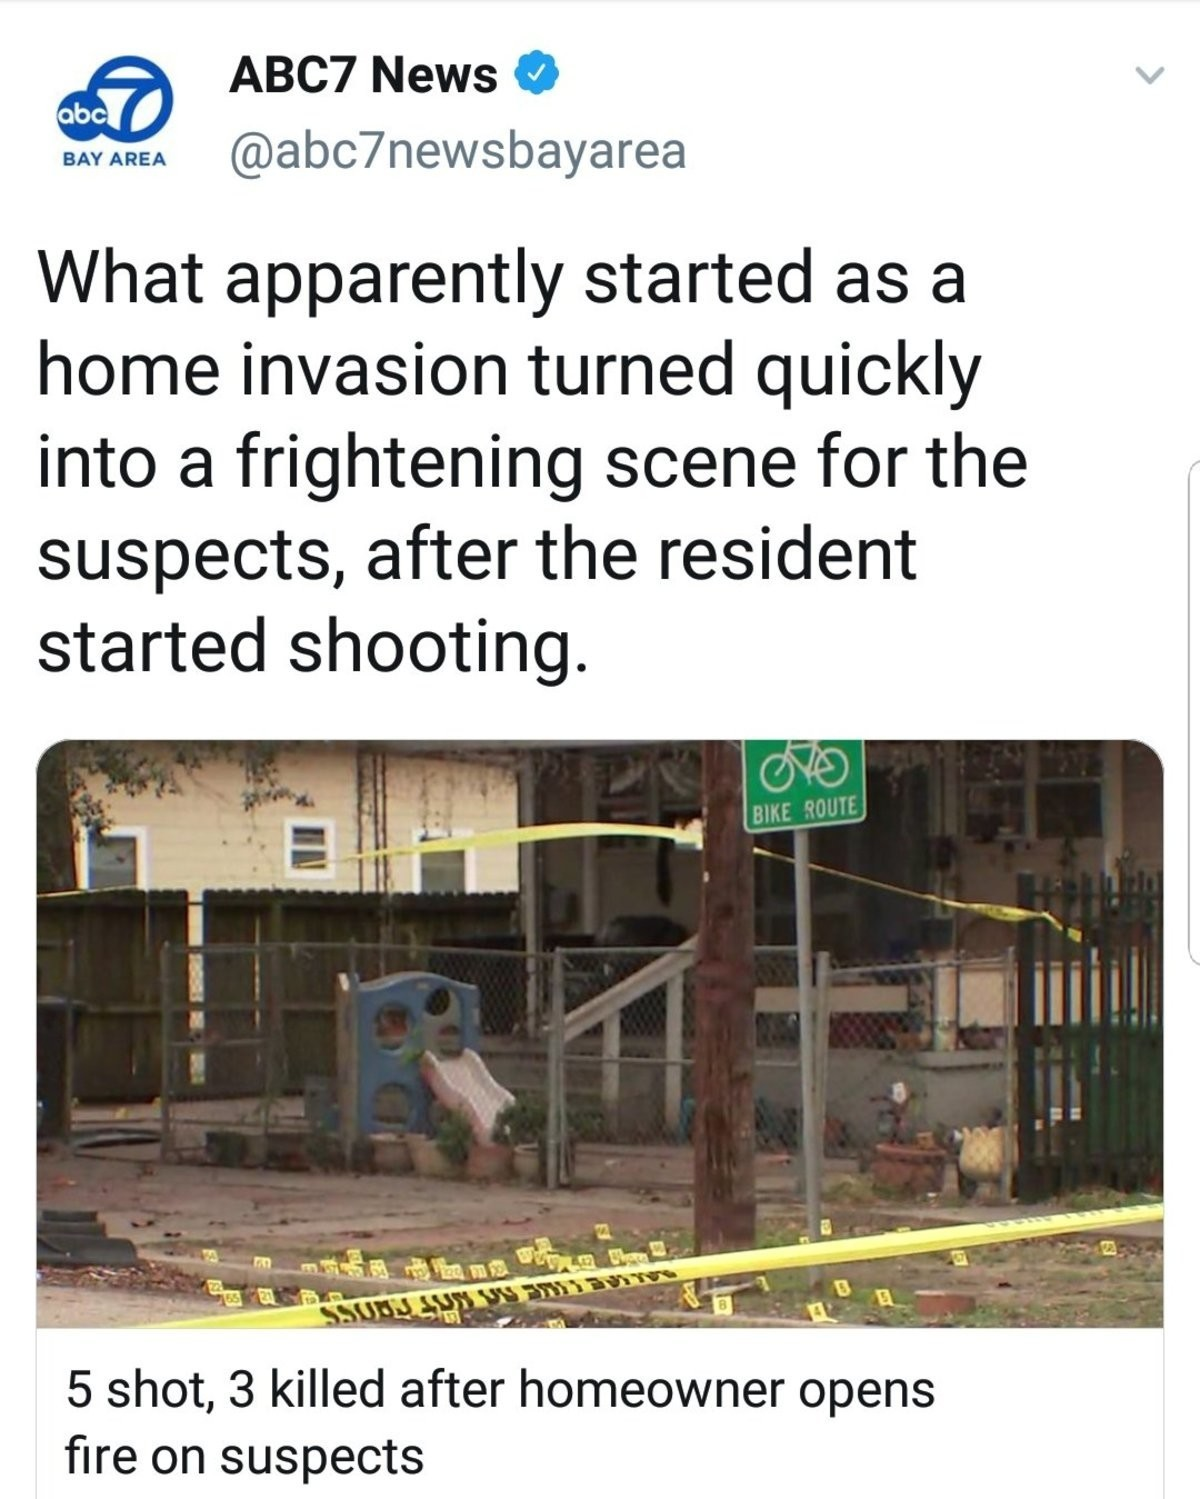 El Camino. .. What do they expect? People to just let themselves be victems? This isnt Europe, we dont let crime happen, we defend ourselves in America.